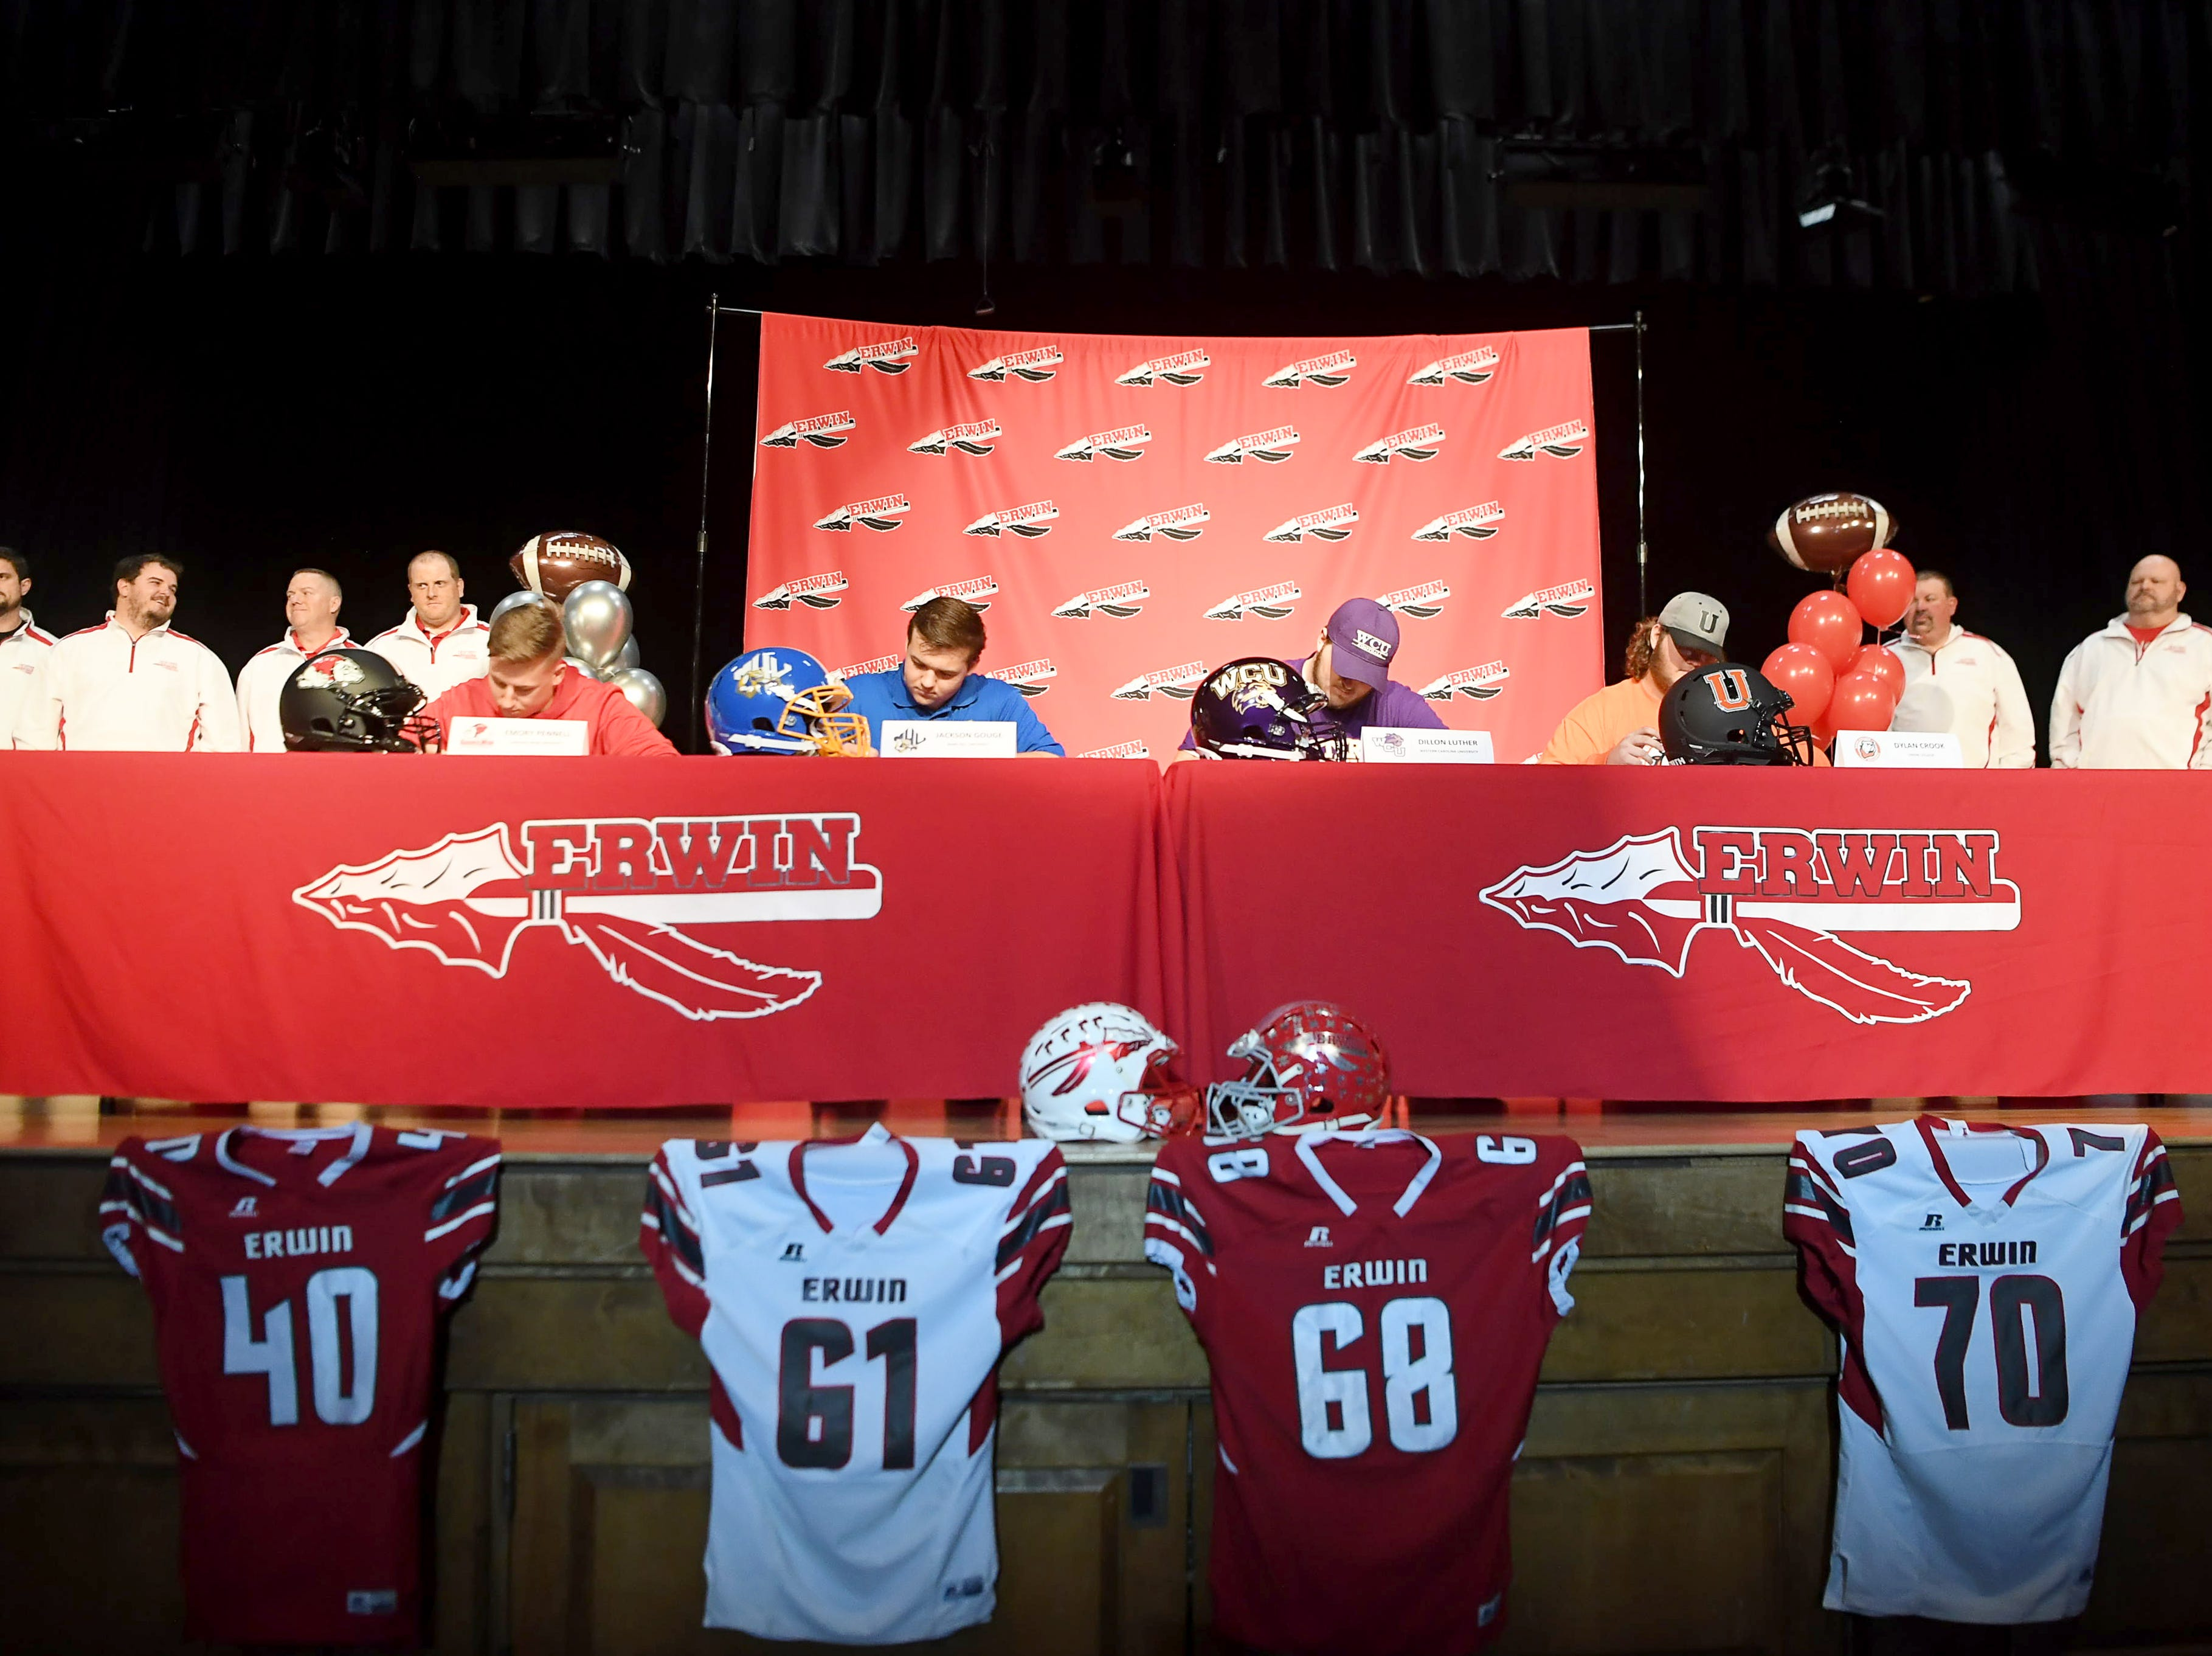 Erwin celebrated National Signing Day on Wednesday, Feb. 6, 2019. Those who signed were Emory Pennell, who signed with Gardner-Webb University, Jackson Gouge, who signed with Mars Hill University, Dillon Luther, who signed with Western Carolina University, and Dylan Crook who signed with Union College.Erwin seniors celebrated National Signing Day by signing to their respecitve colleges. Seated, from left, are Emory Pennell, who signed with Gardner-Webb University, Jackson Gouge, who signed with Mars Hill University, Dillon Luther, who signed with Western Carolina University, and Dylan Crook who signed with Union College.